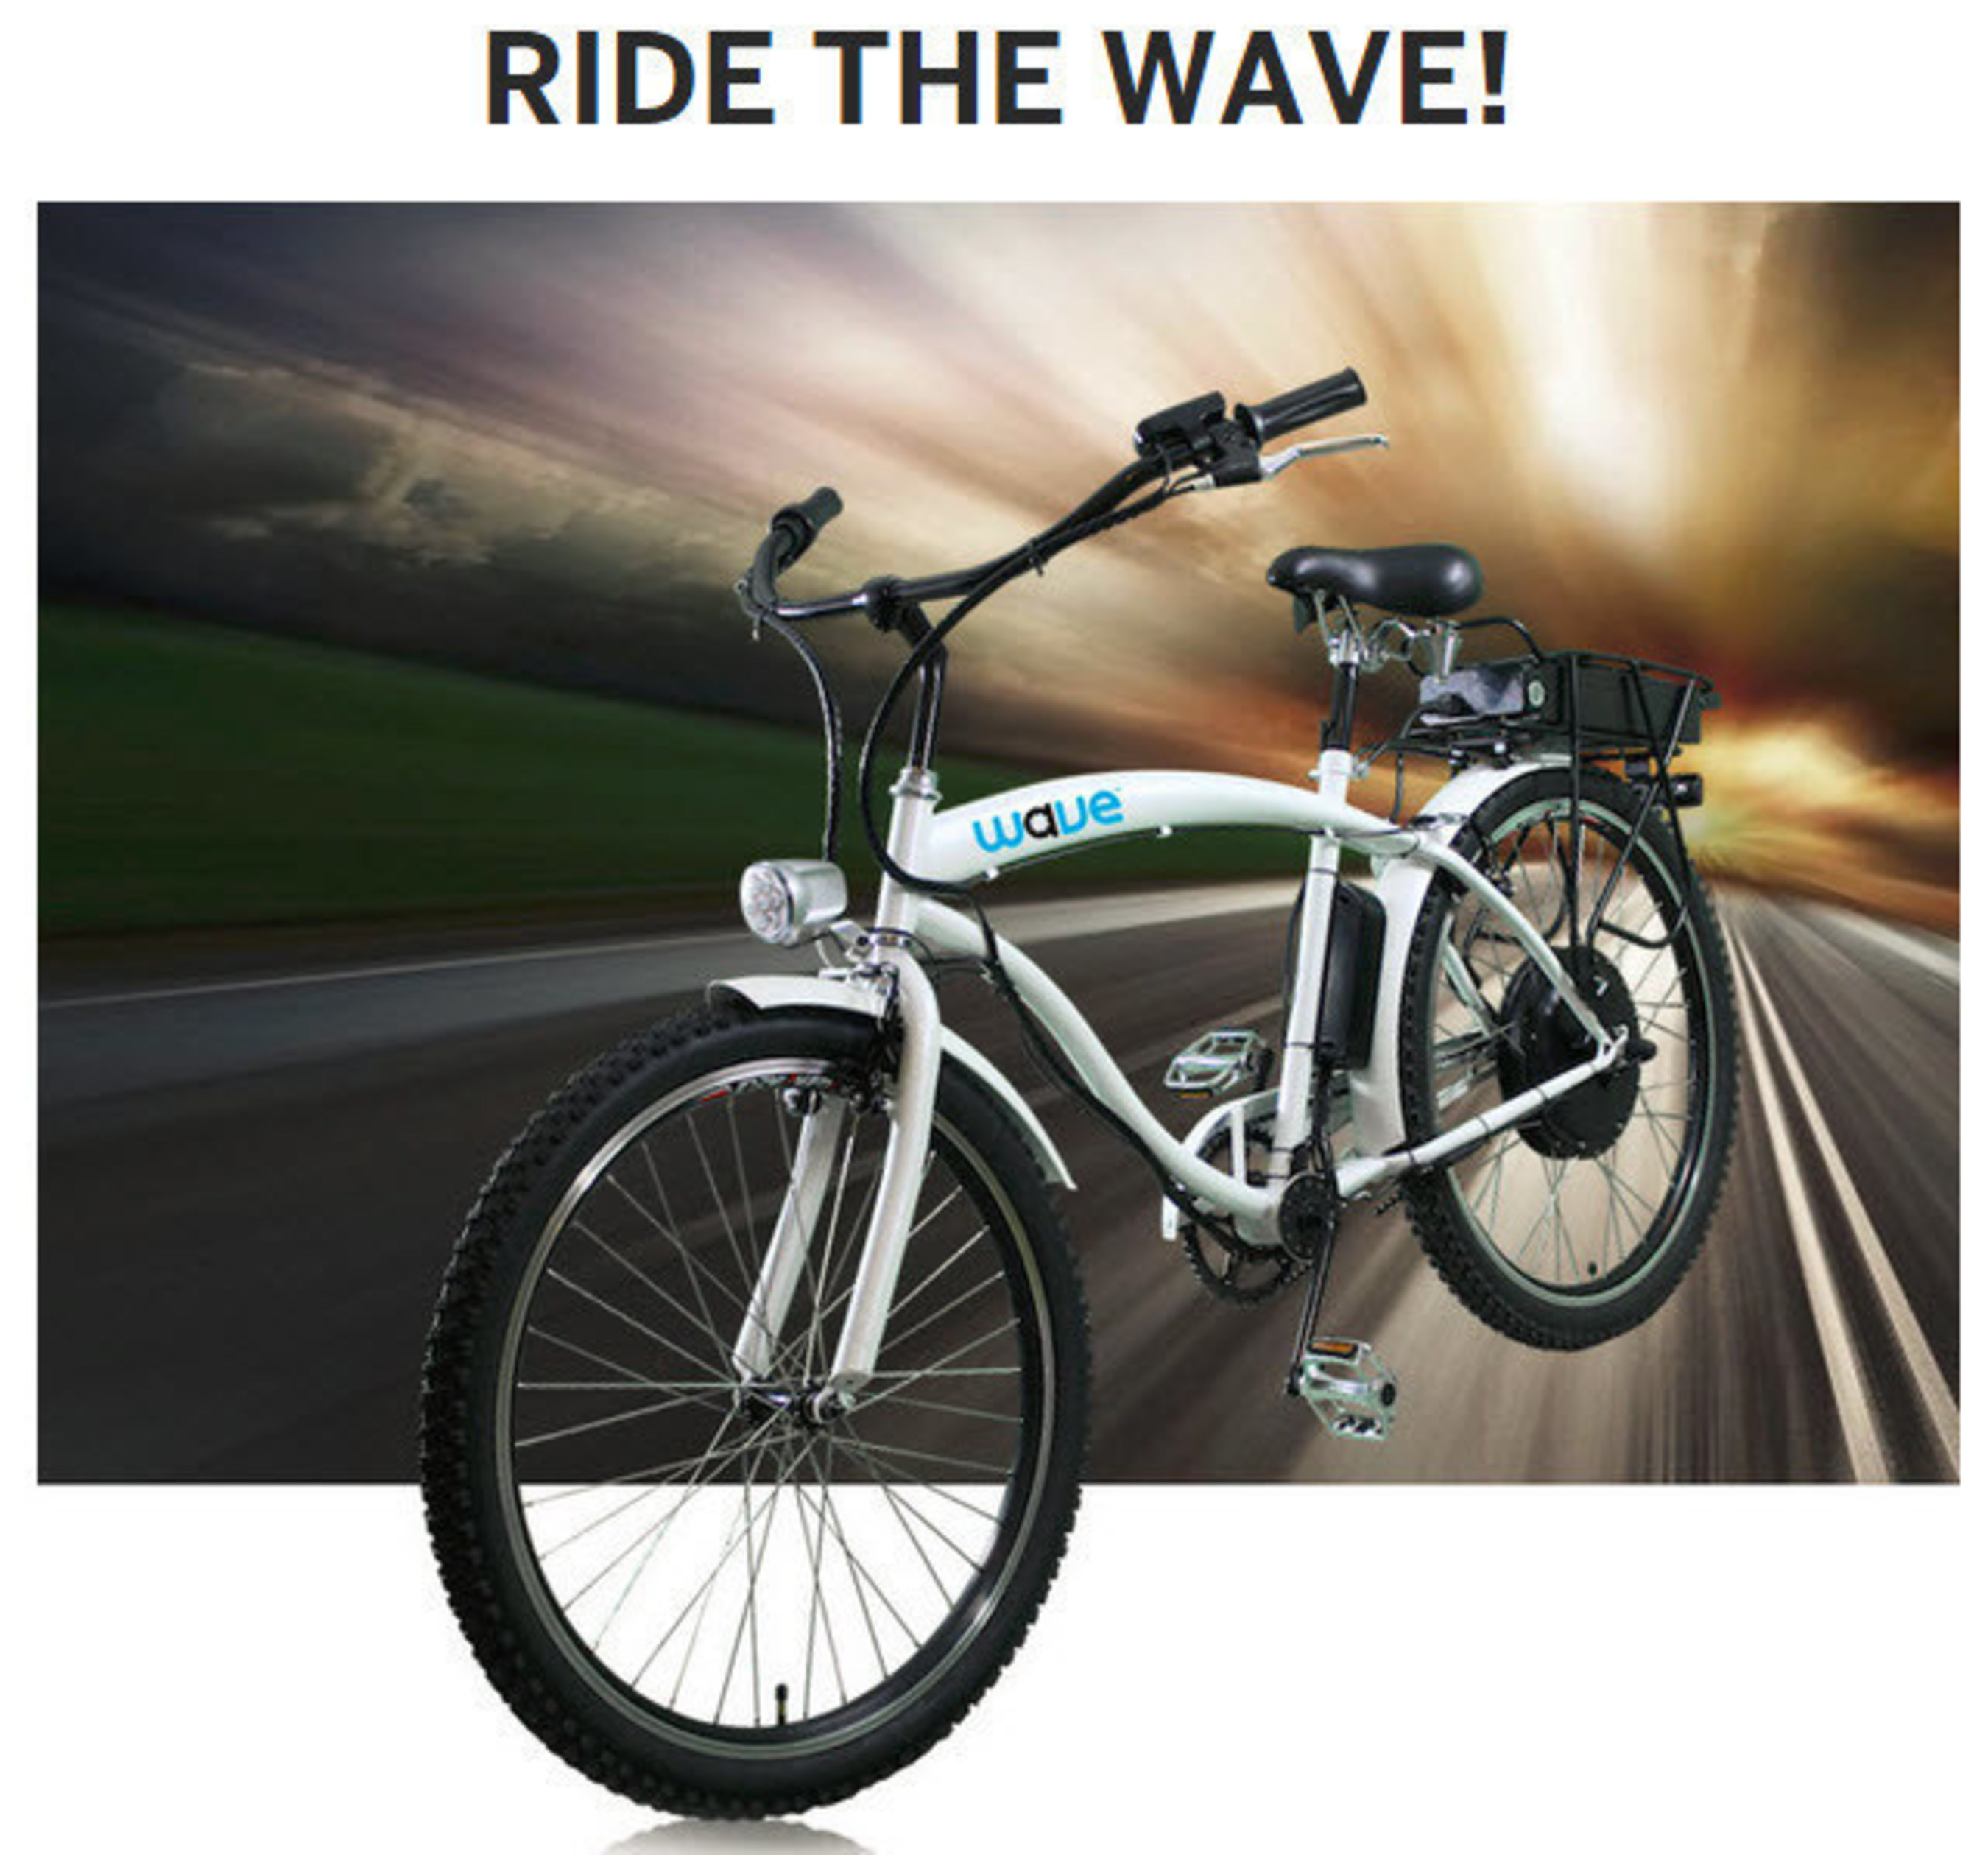 World's Most Affordable $549 Electric Bike Makes Going Green Fun for Everyone